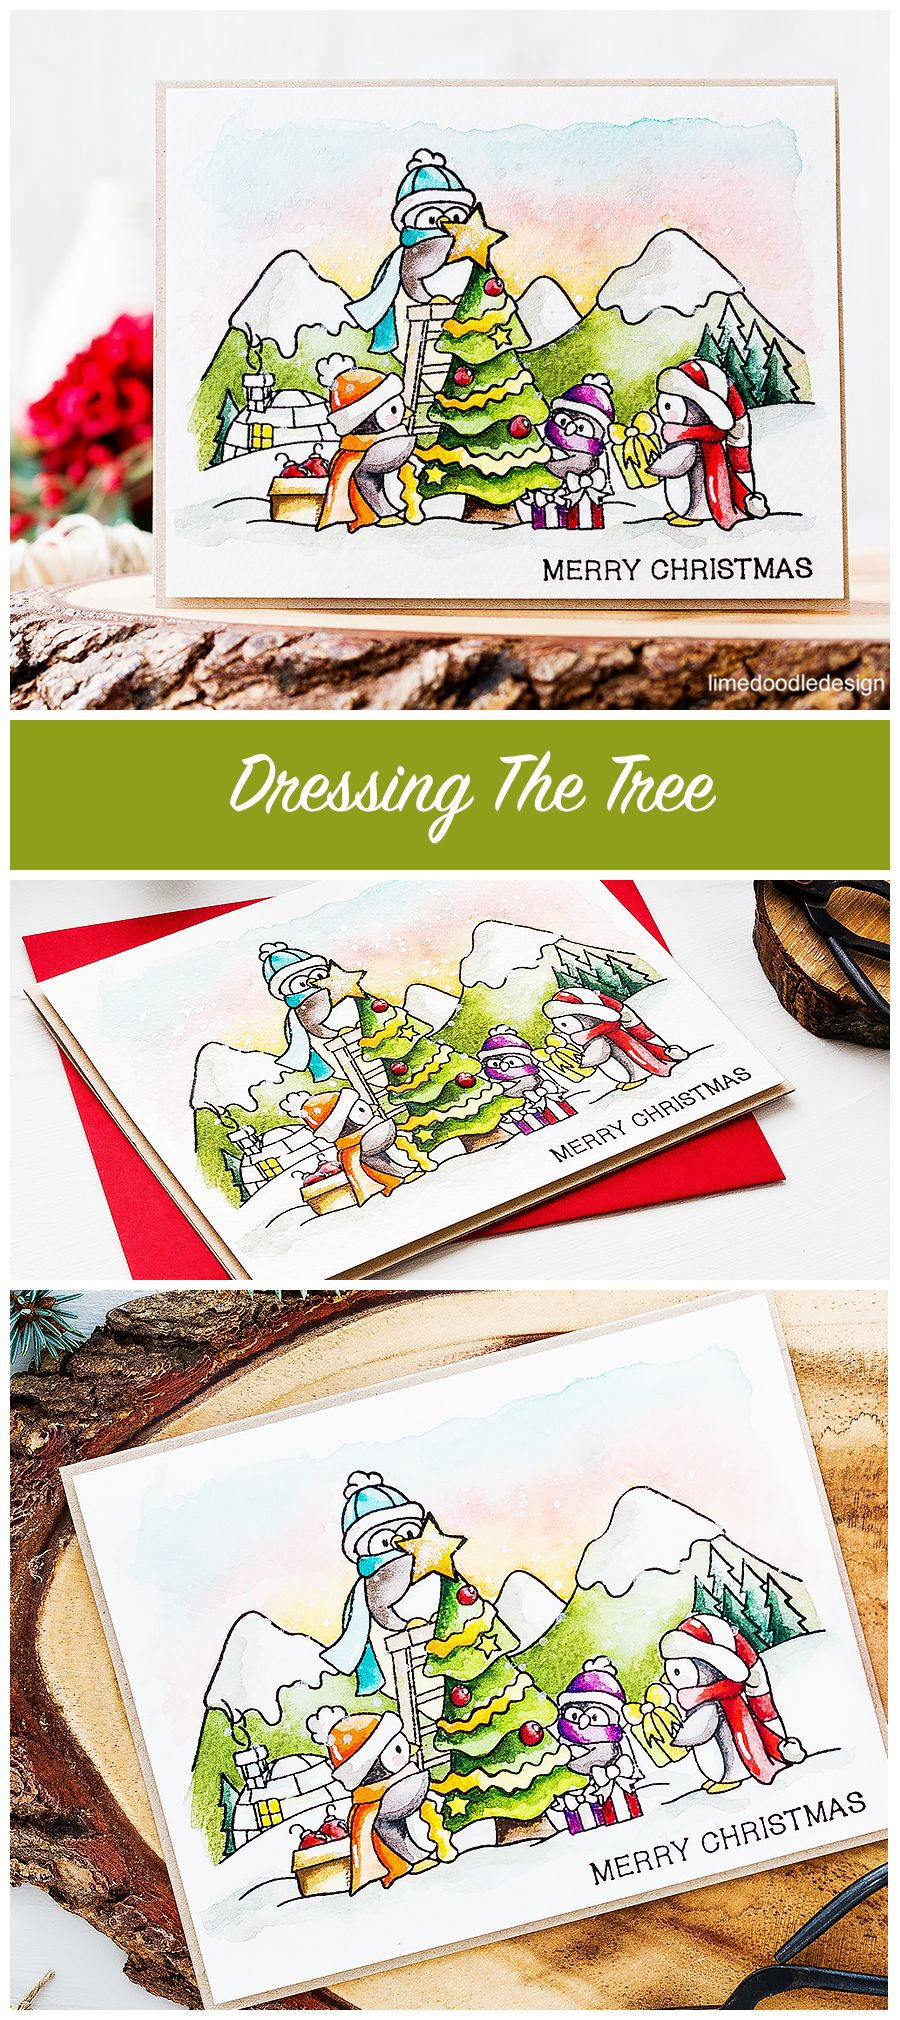 Video – Dressing The Tree | Cards, Christmas card images and ...